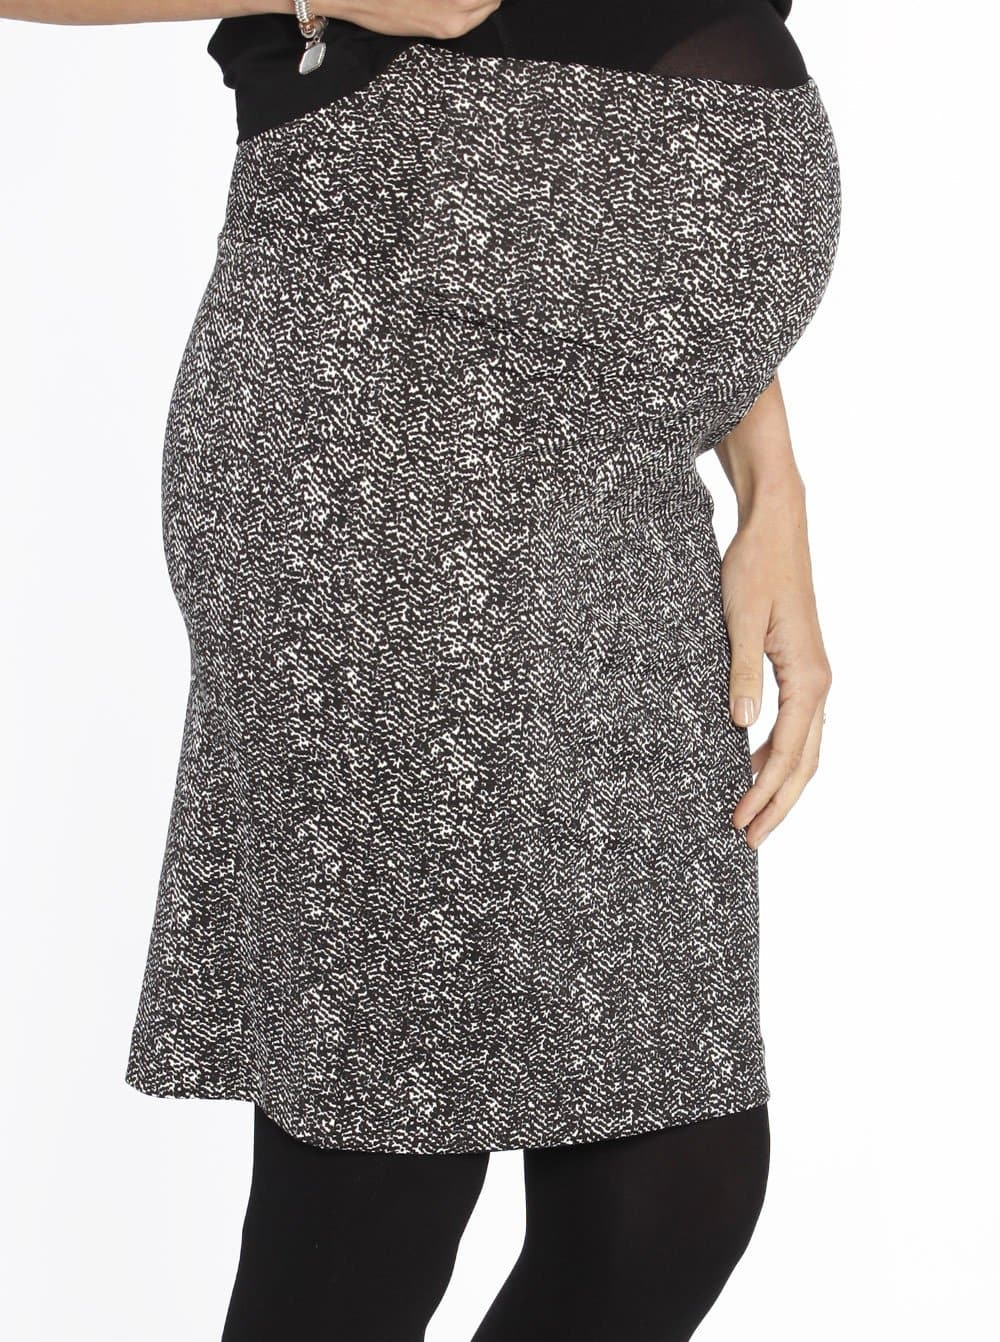 Maternity Stretchy Ponti Skirt in Black & White Print